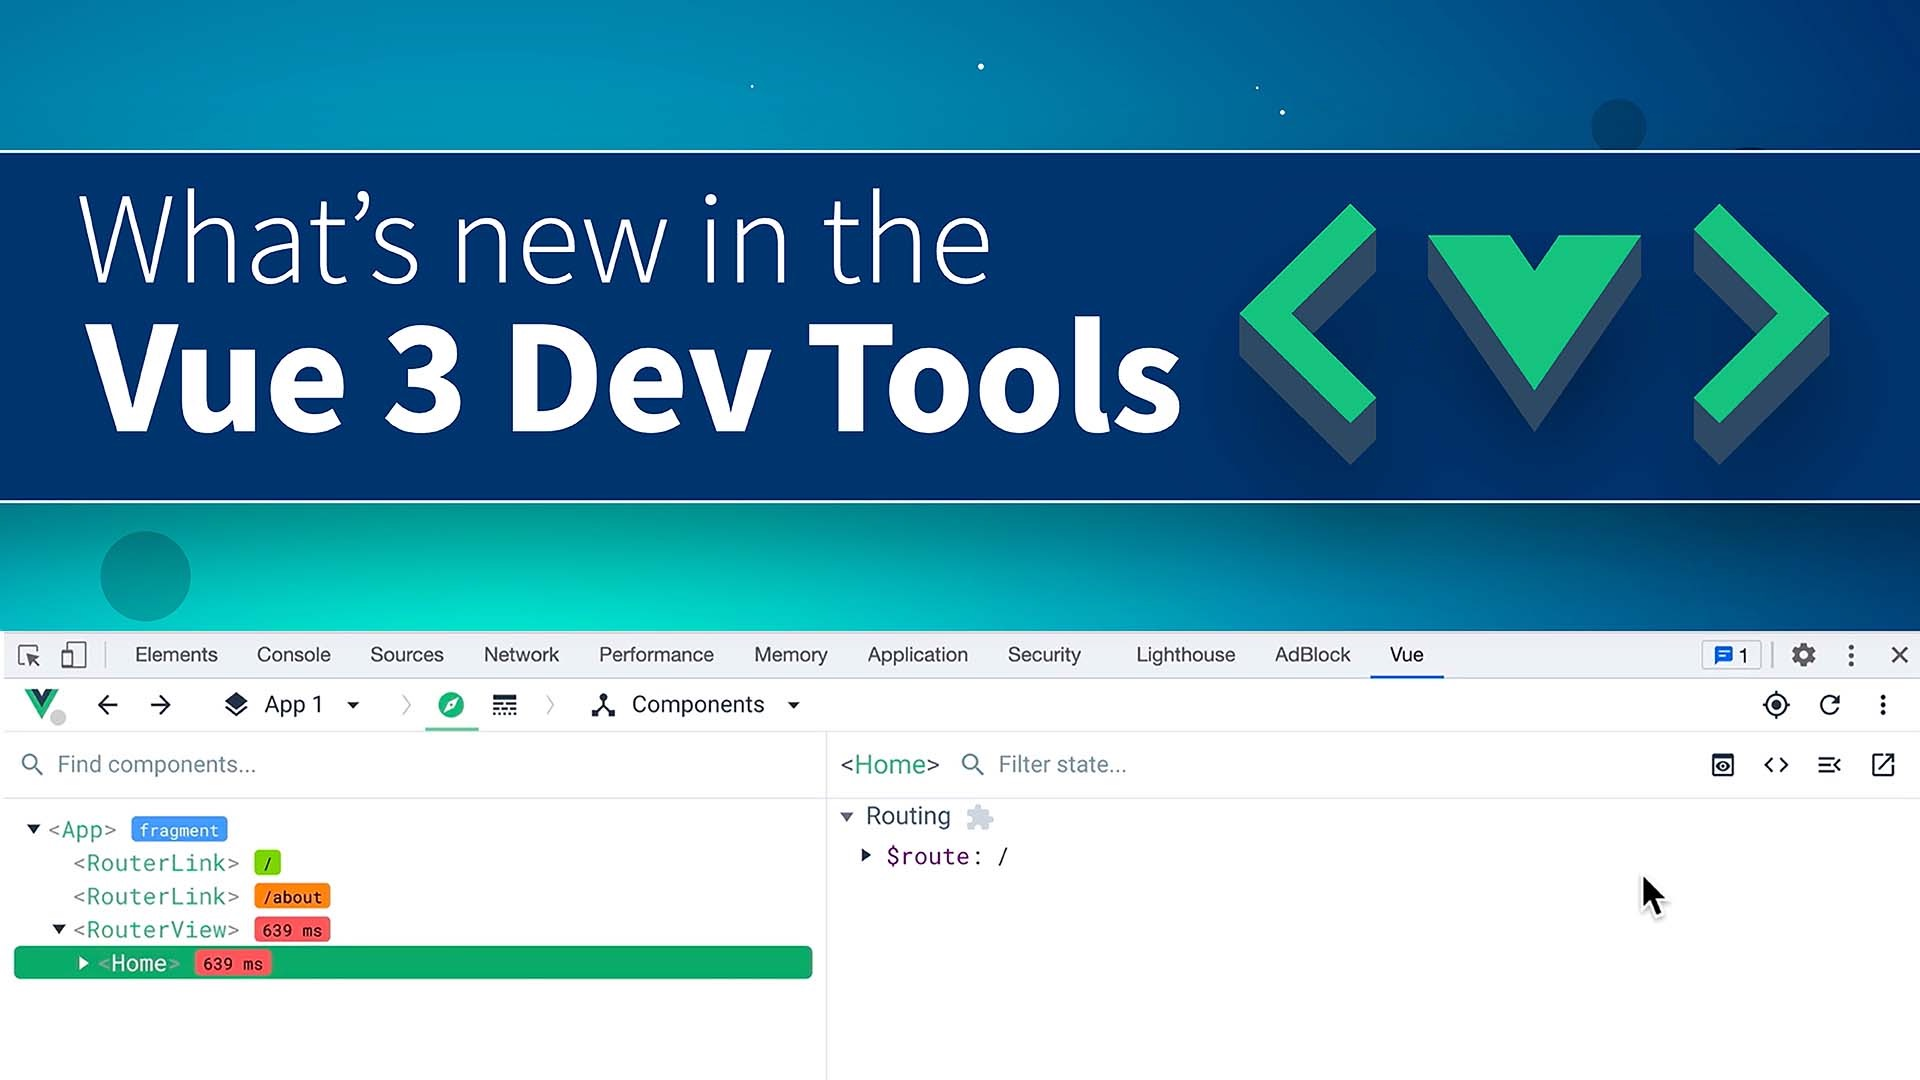 What's new in the Vue 3 Dev Tools